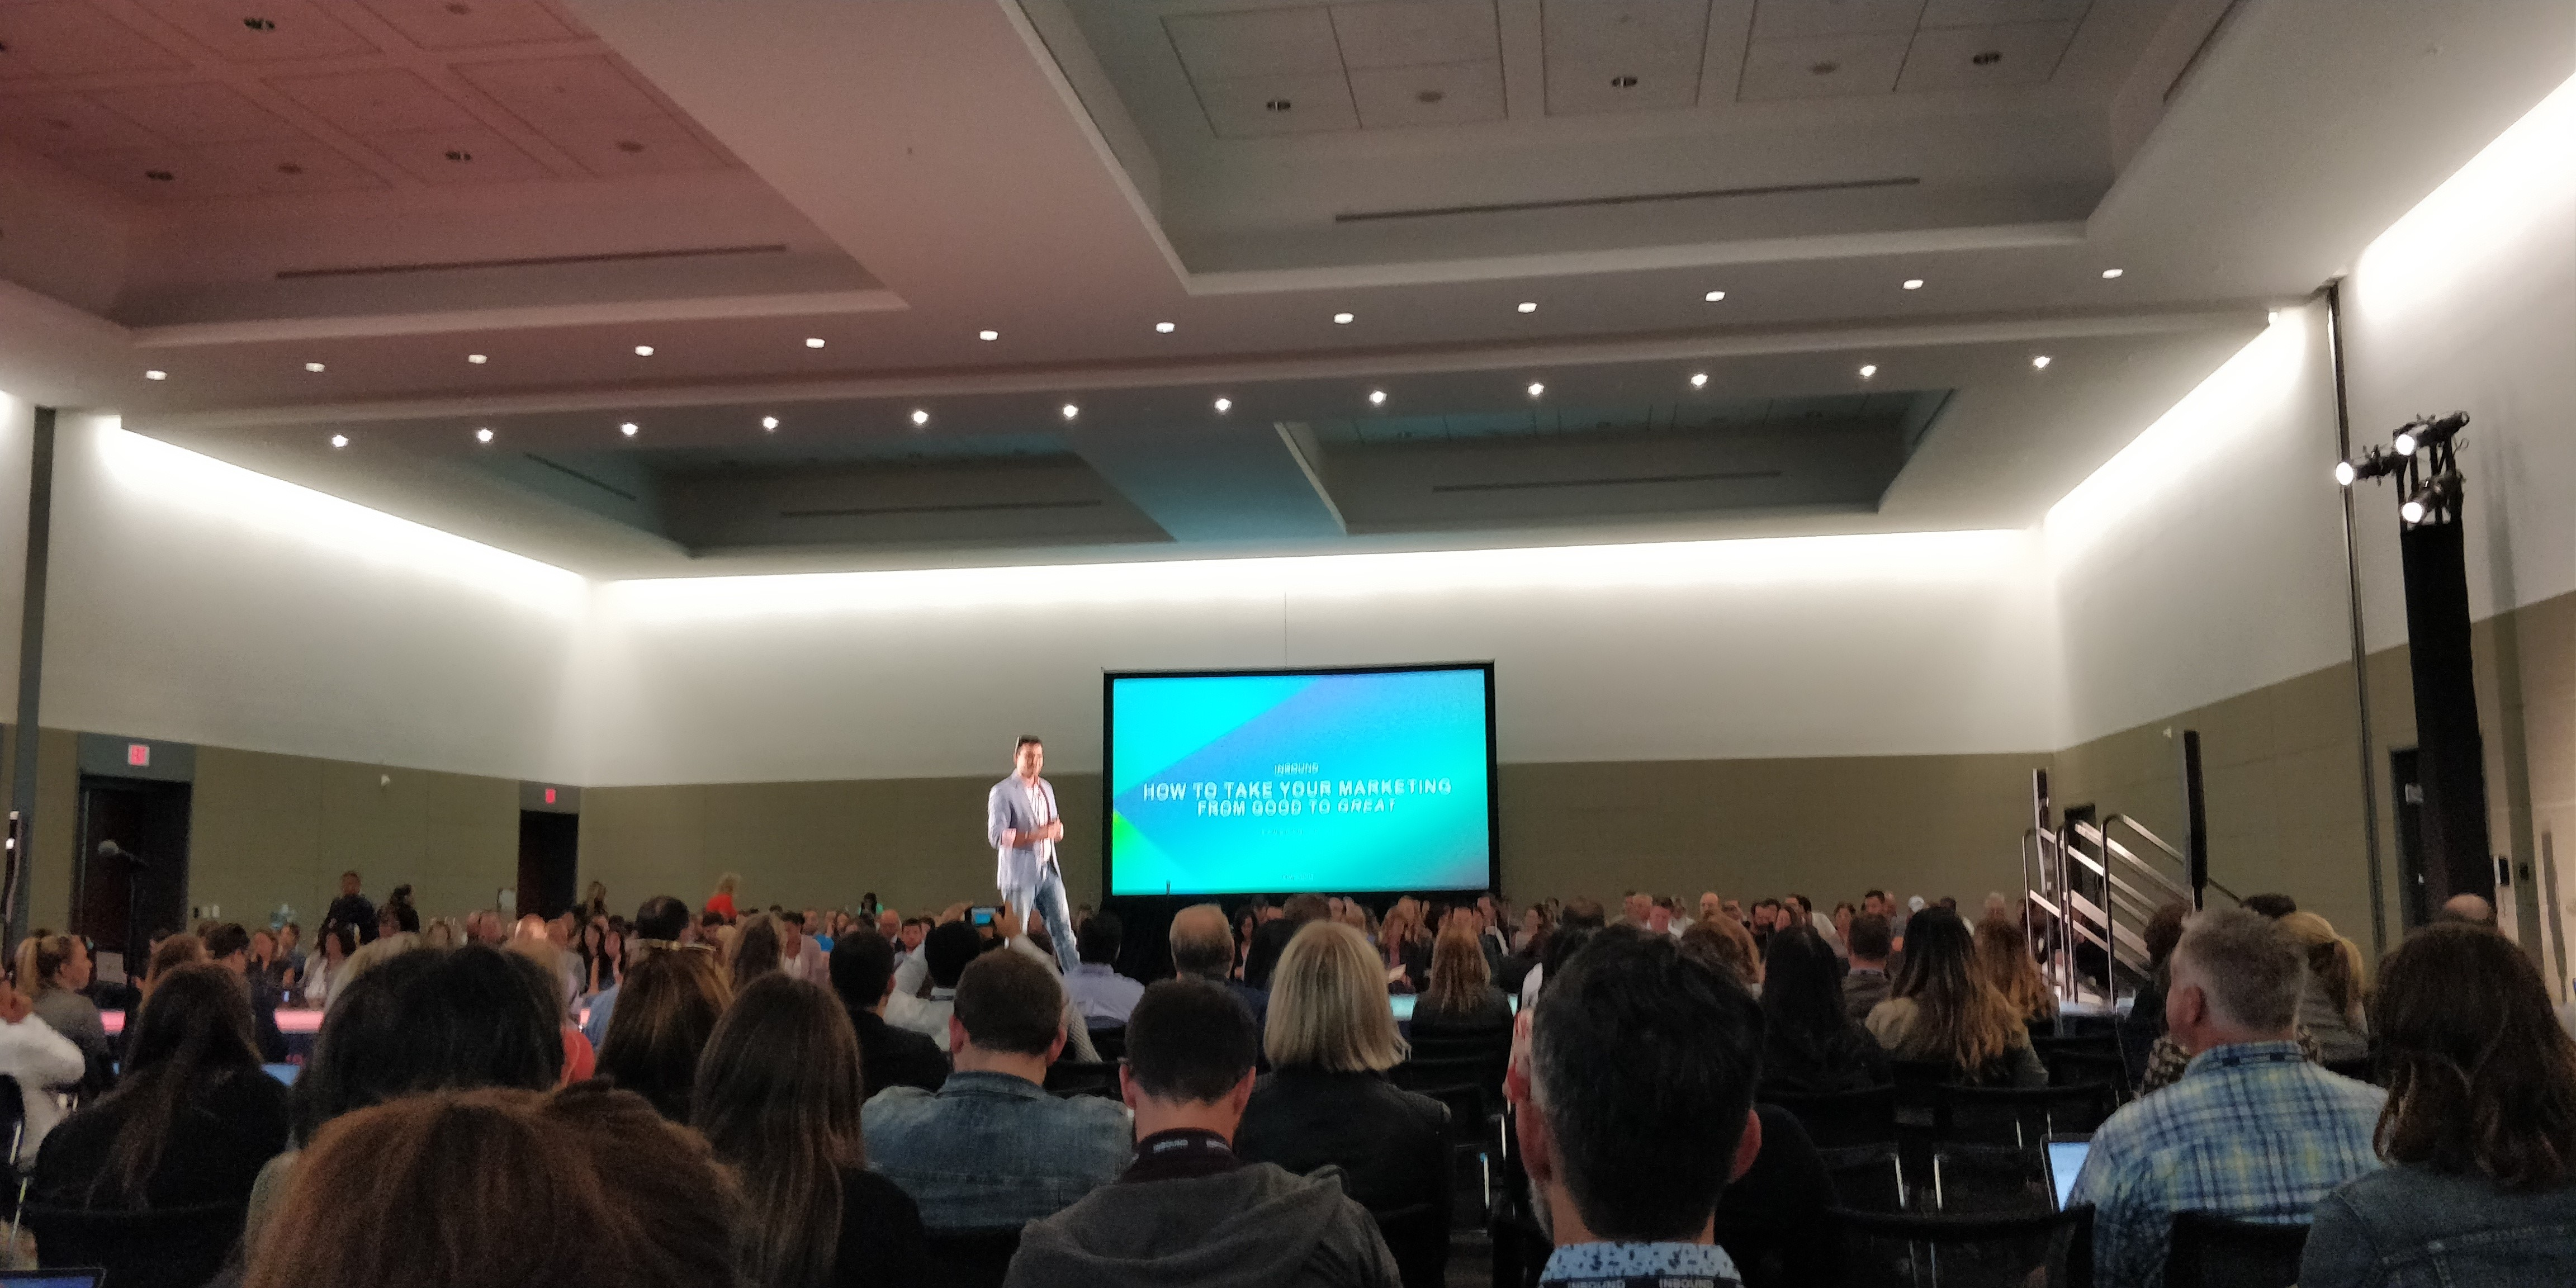 Insynth @INBOUND19 - How To Take Your Marketing From Good To Great